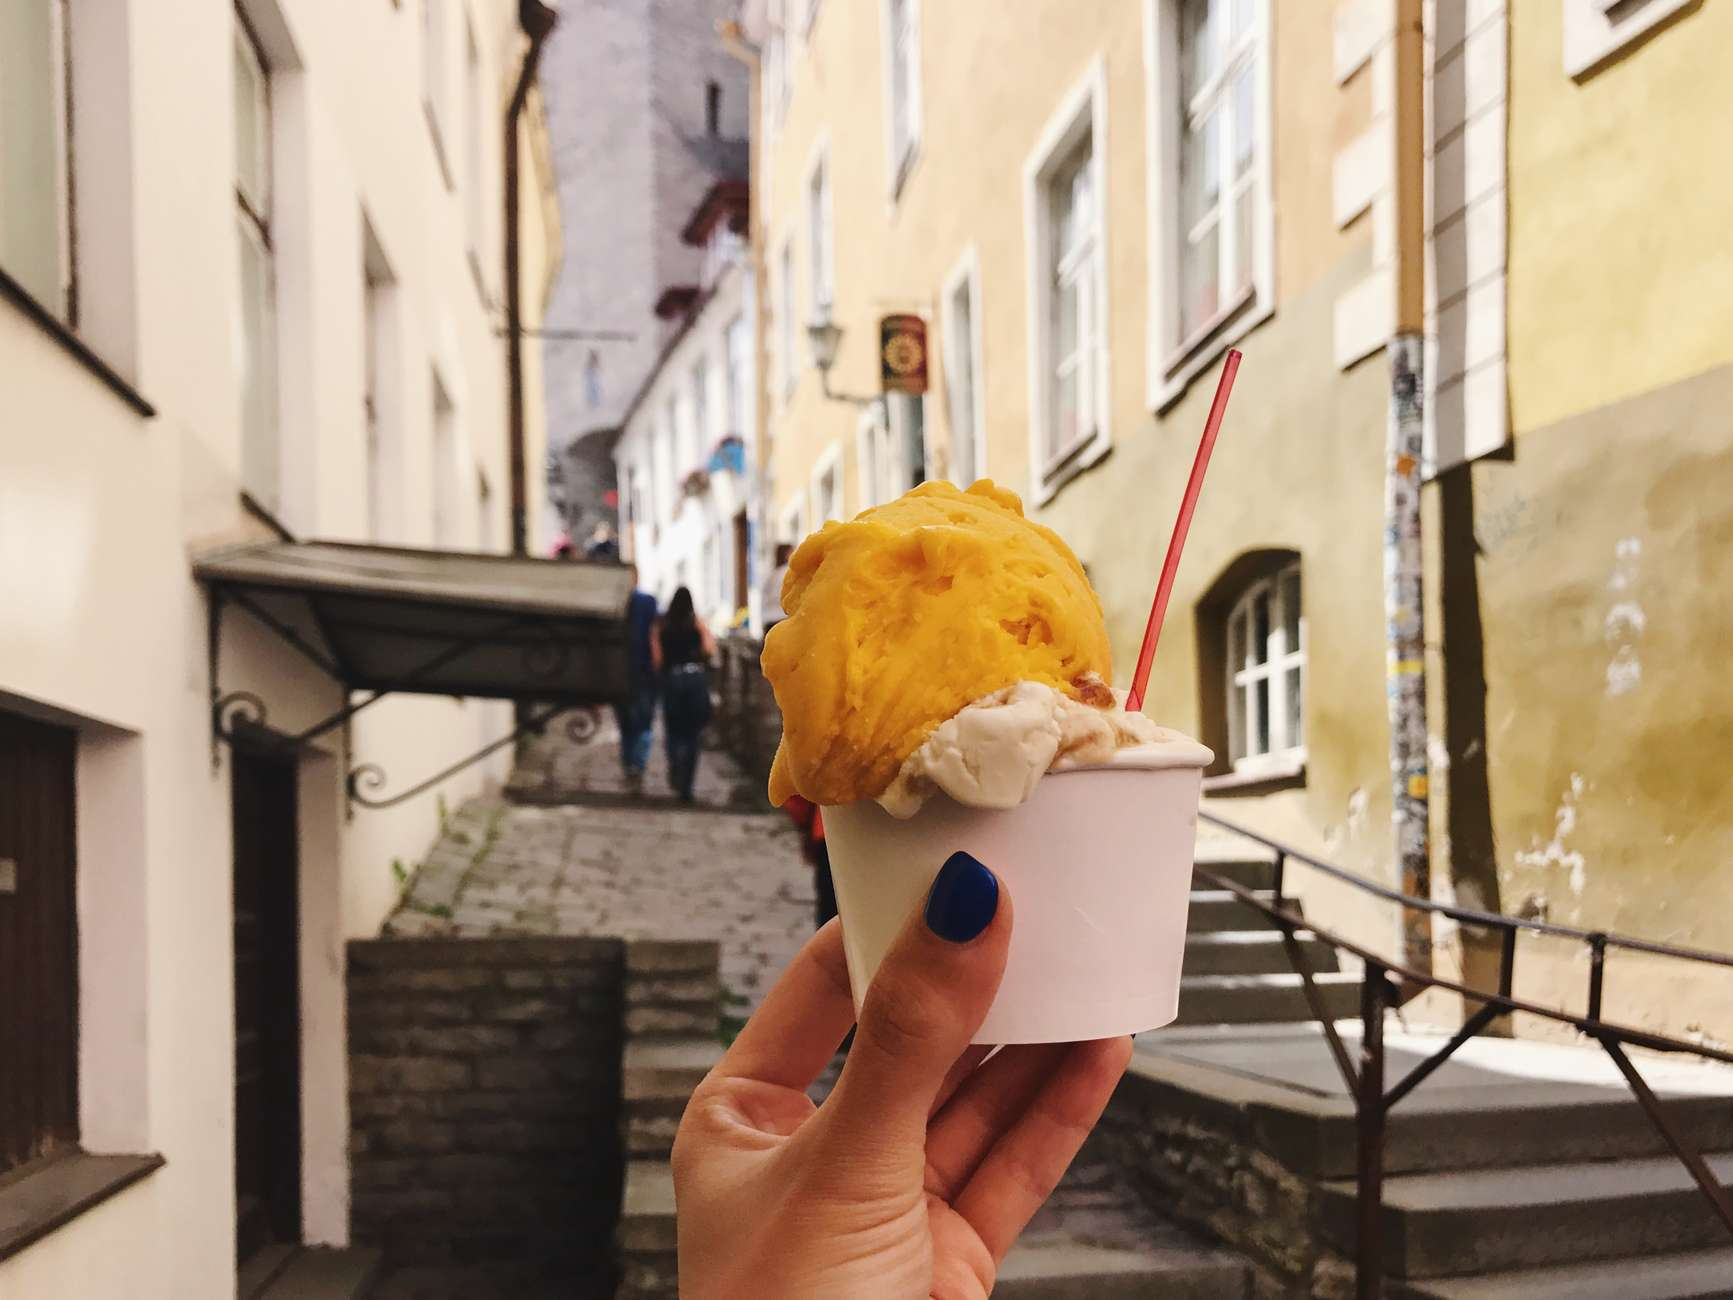 TOP 5 Ice cream shops in Tallinn